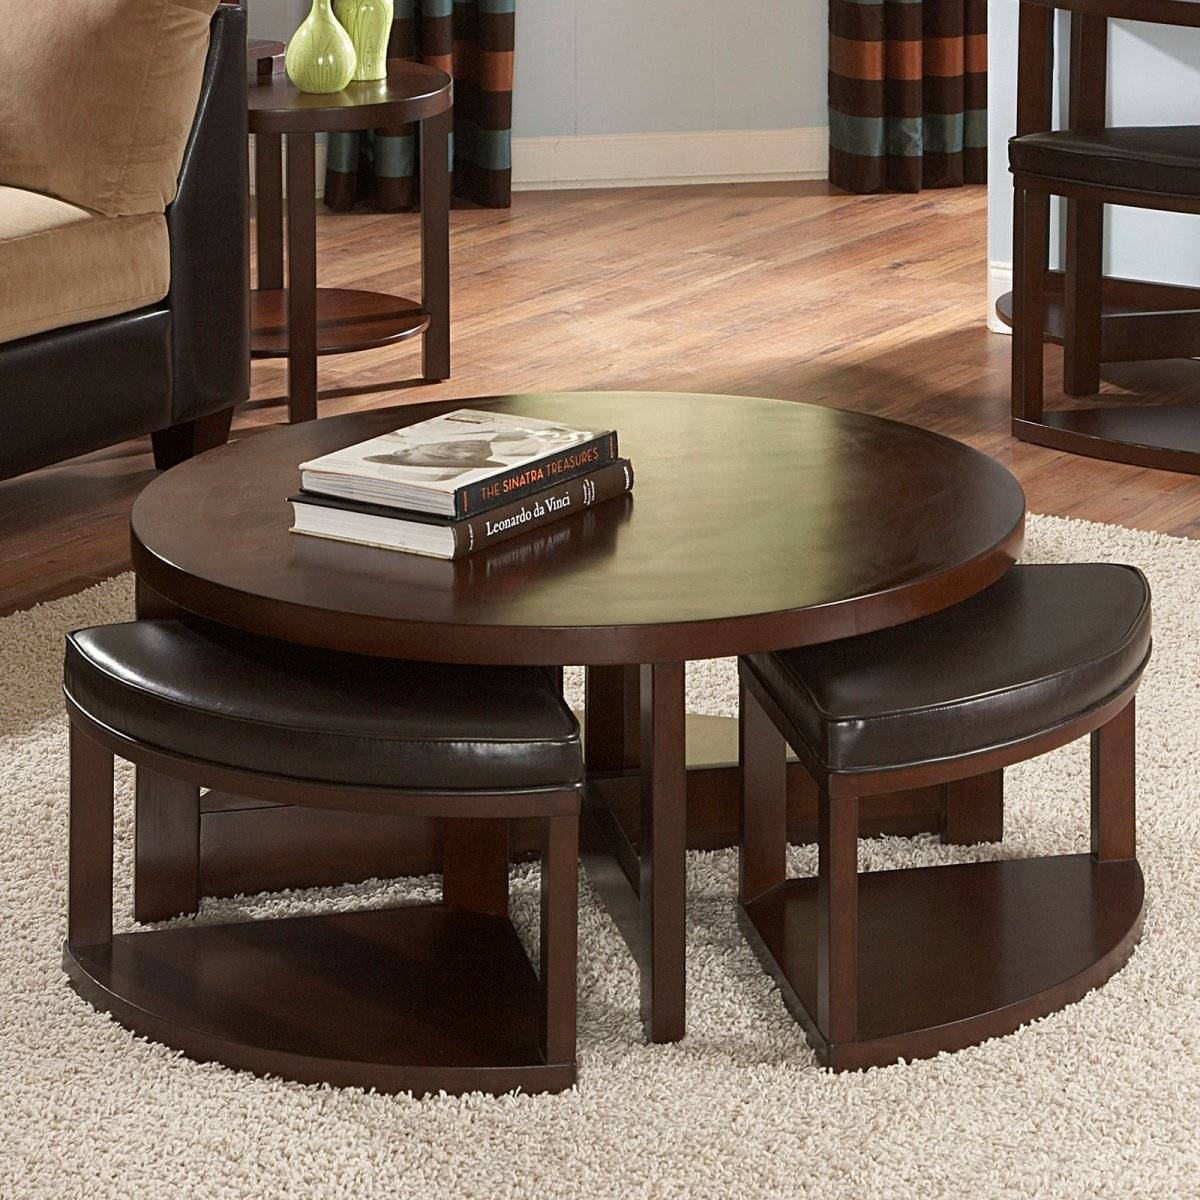 Reupholster Round Coffee Table Ottoman In Small Circle Coffee Tables (View 19 of 30)